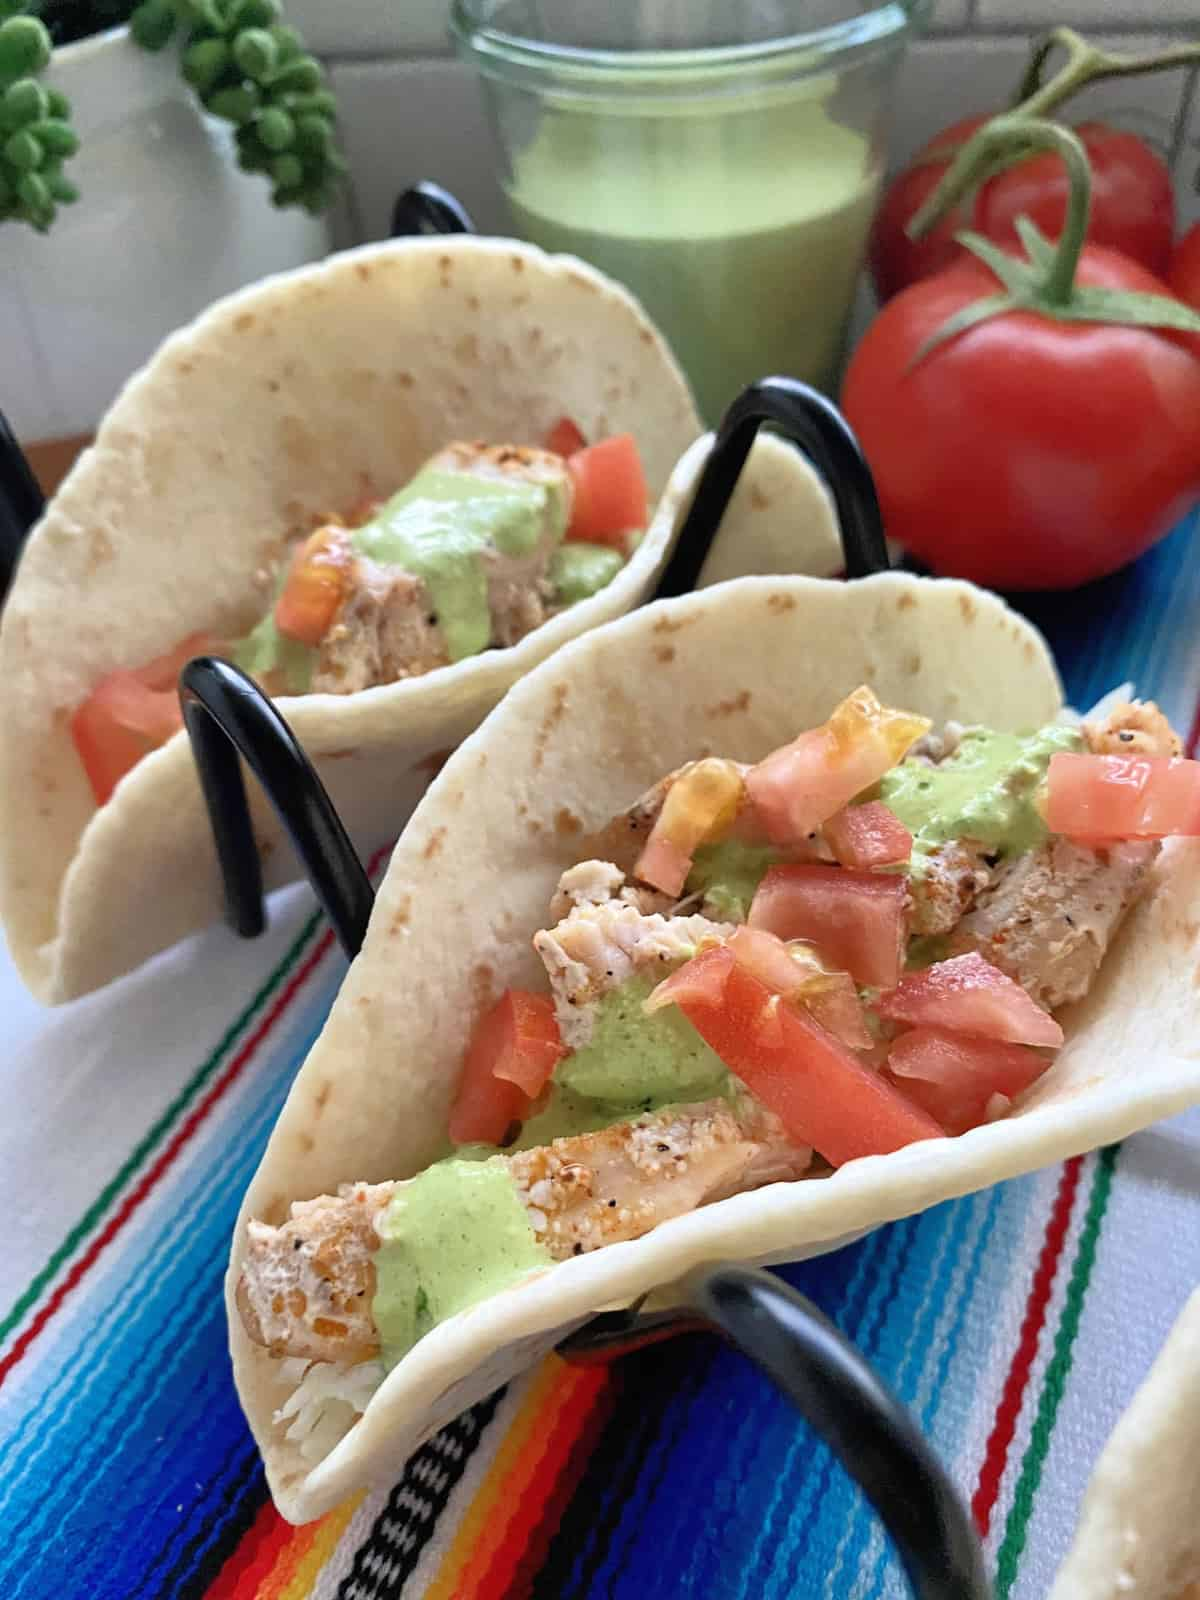 closeup of two fish tacos topped with tomatoes and cilantro dressing in wire holders on colorful tablecloth.